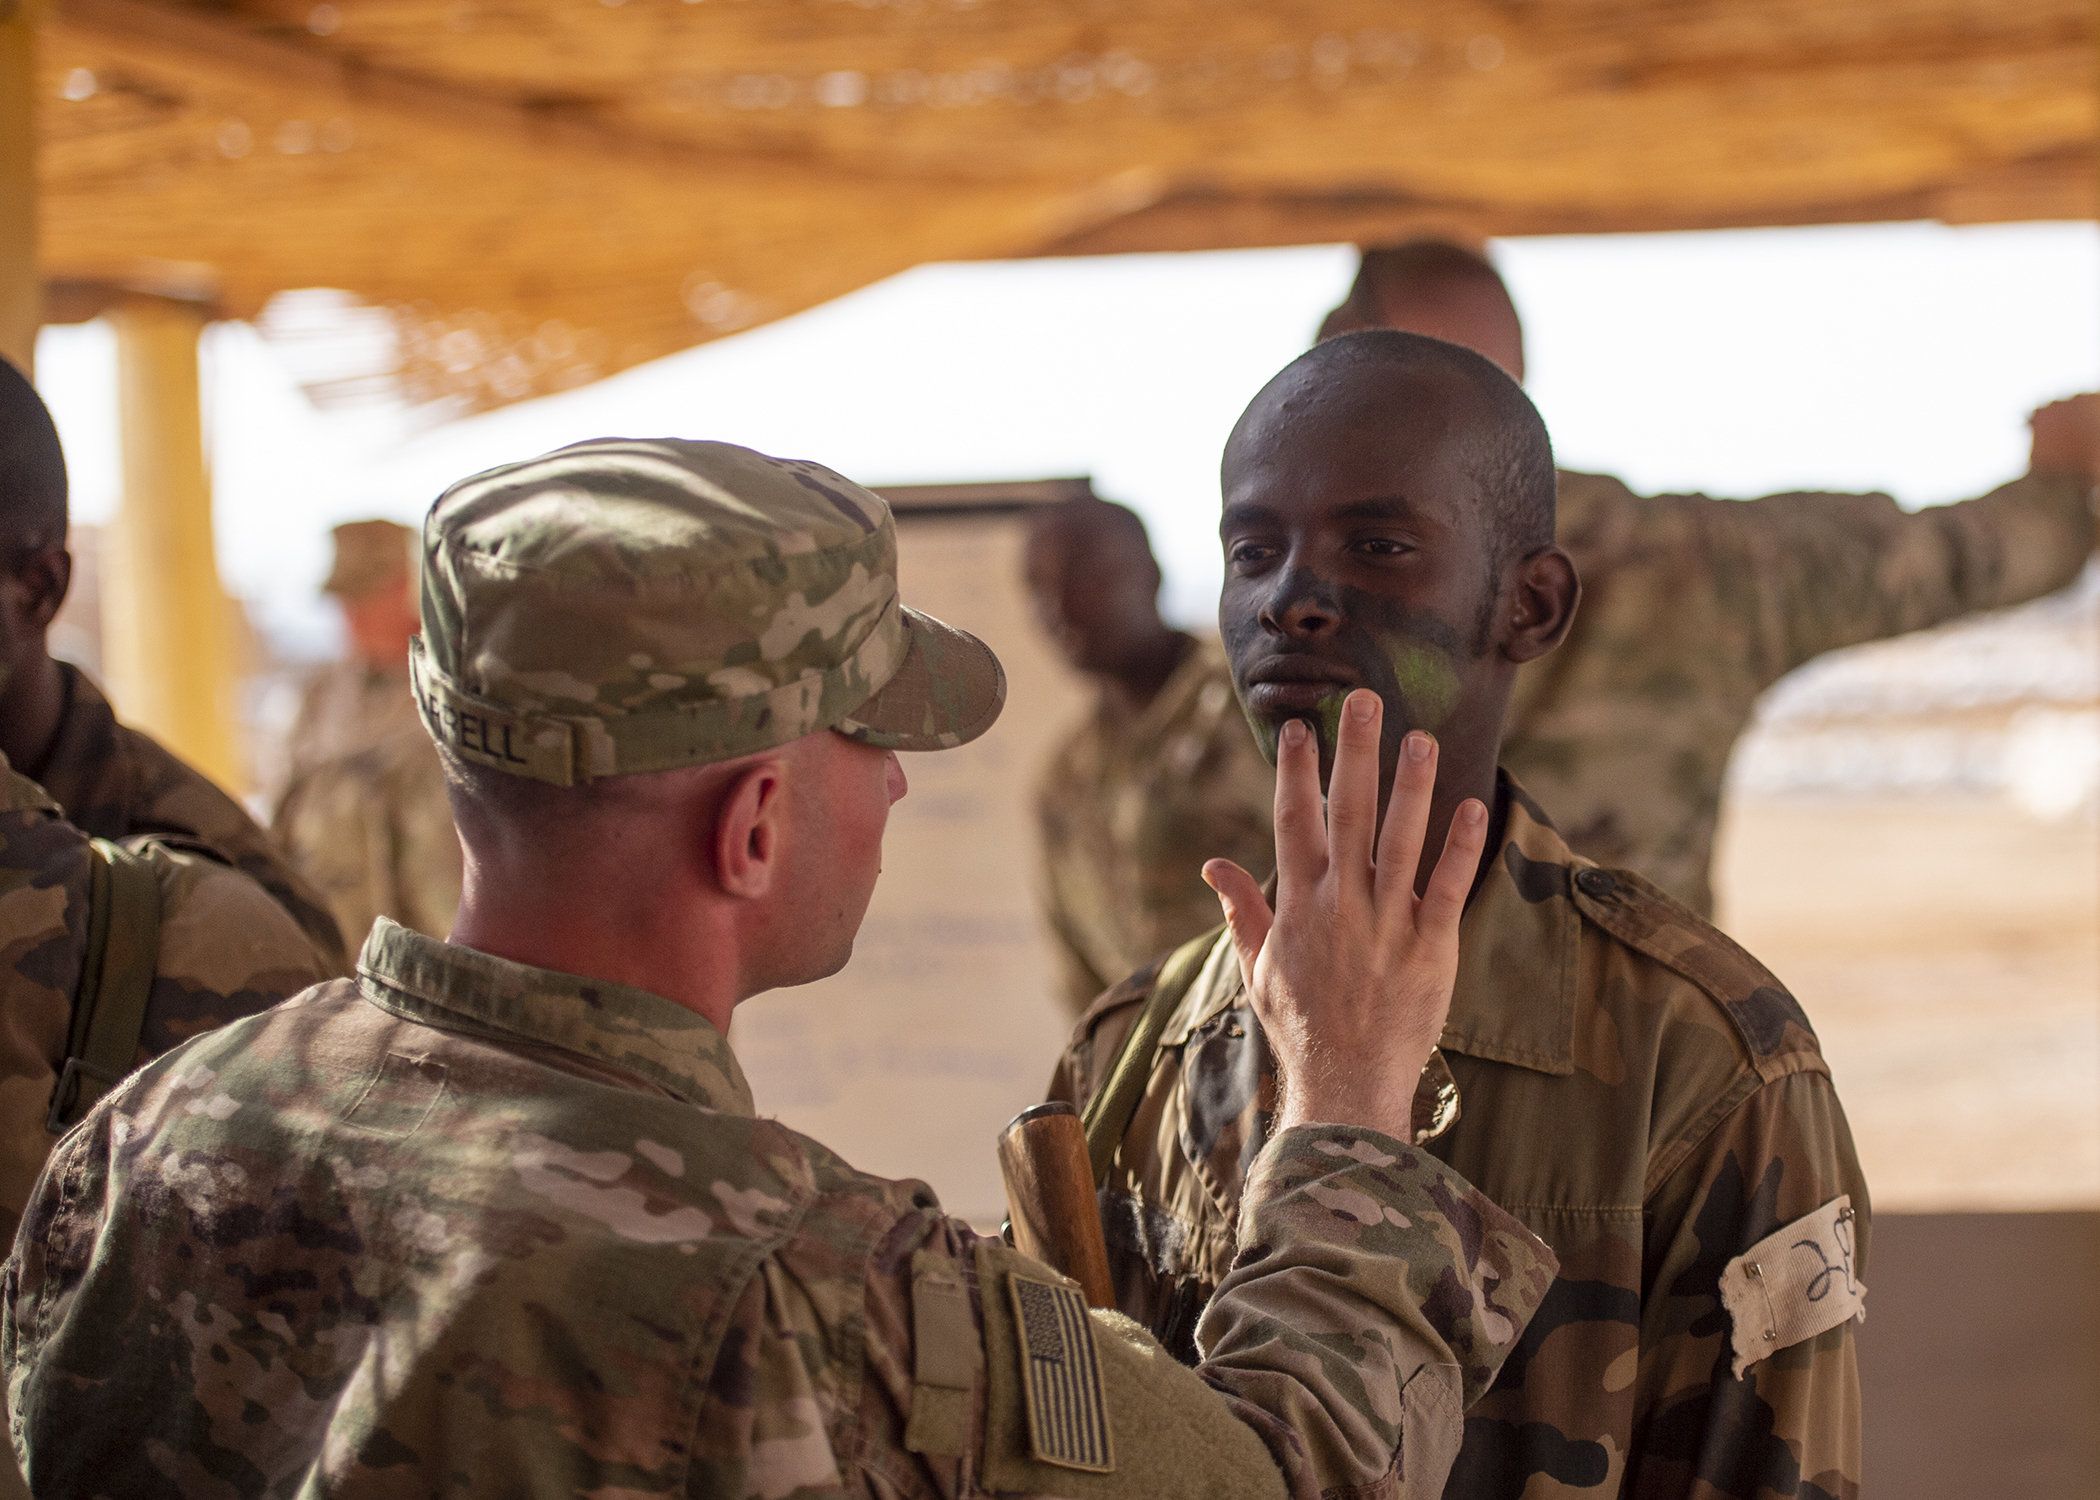 A U.S. Army Soldier with Headquarters Company, 1-26 Infantry Battalion, 2nd Brigade Combat Team, 101st Airborne, assigned to Combined Joint Task Force-Horn of Africa, helps a soldier from the Rapid Intervention Battalion (RIB), the Djiboutian army's elite military force, prepare for a visit from U.S. Marine Corps Gen. Thomas D. Waldhauser, commander of U.S. Africa Command, and Chief of General Staff of the Djibouti Armed Forces Zakaria Cheik Ibrahim, at a training base in Djibouti, March 21, 2019. Waldhauser and Zakaria visited in order to discuss the growth and development of Djiboutian security forces. (U.S. Air Force photo by Tech. Sgt. Shawn Nickel)